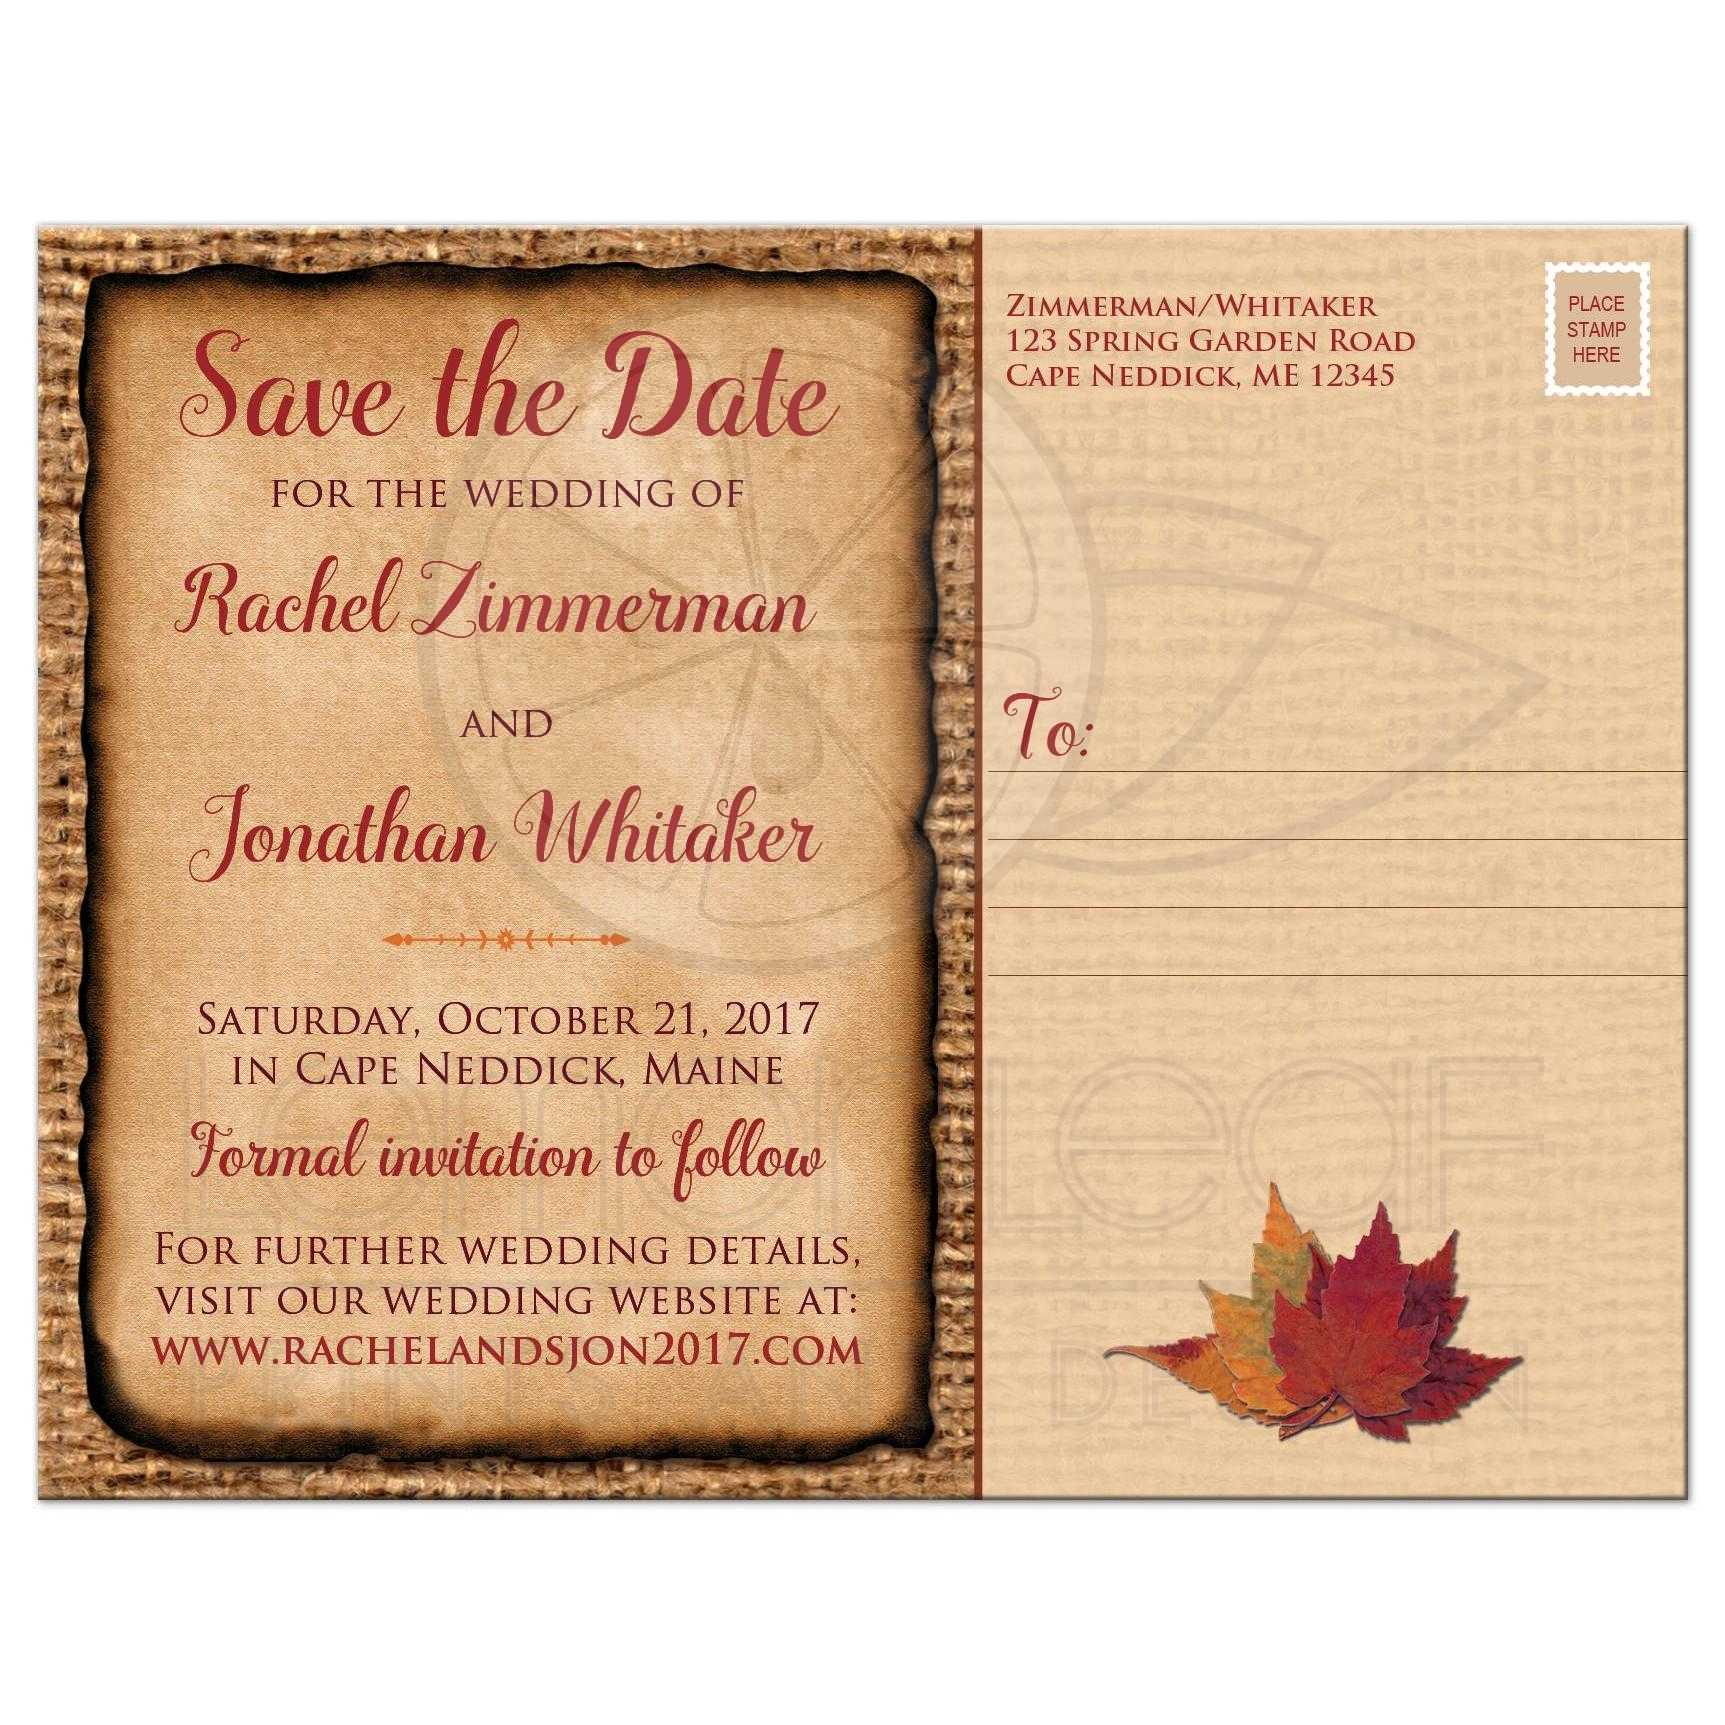 Rustic Wedding Save the Date Postcard – Wedding Save the Date Card